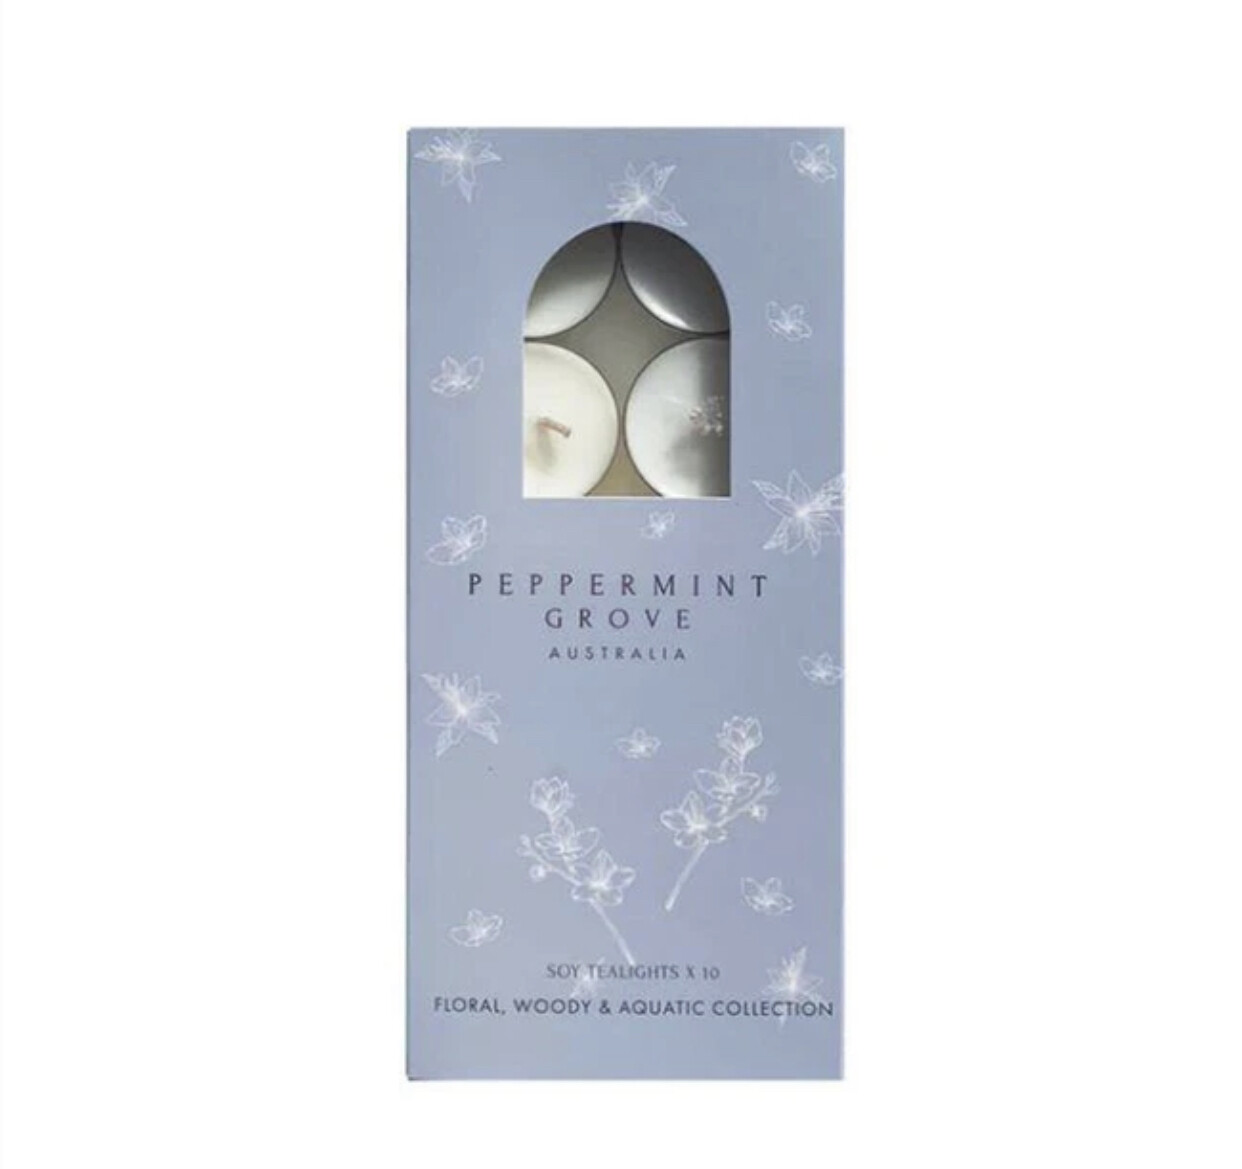 PEPPERMINT GROVE - Floral, Woody & Aquatic Collection - Soy Tealights